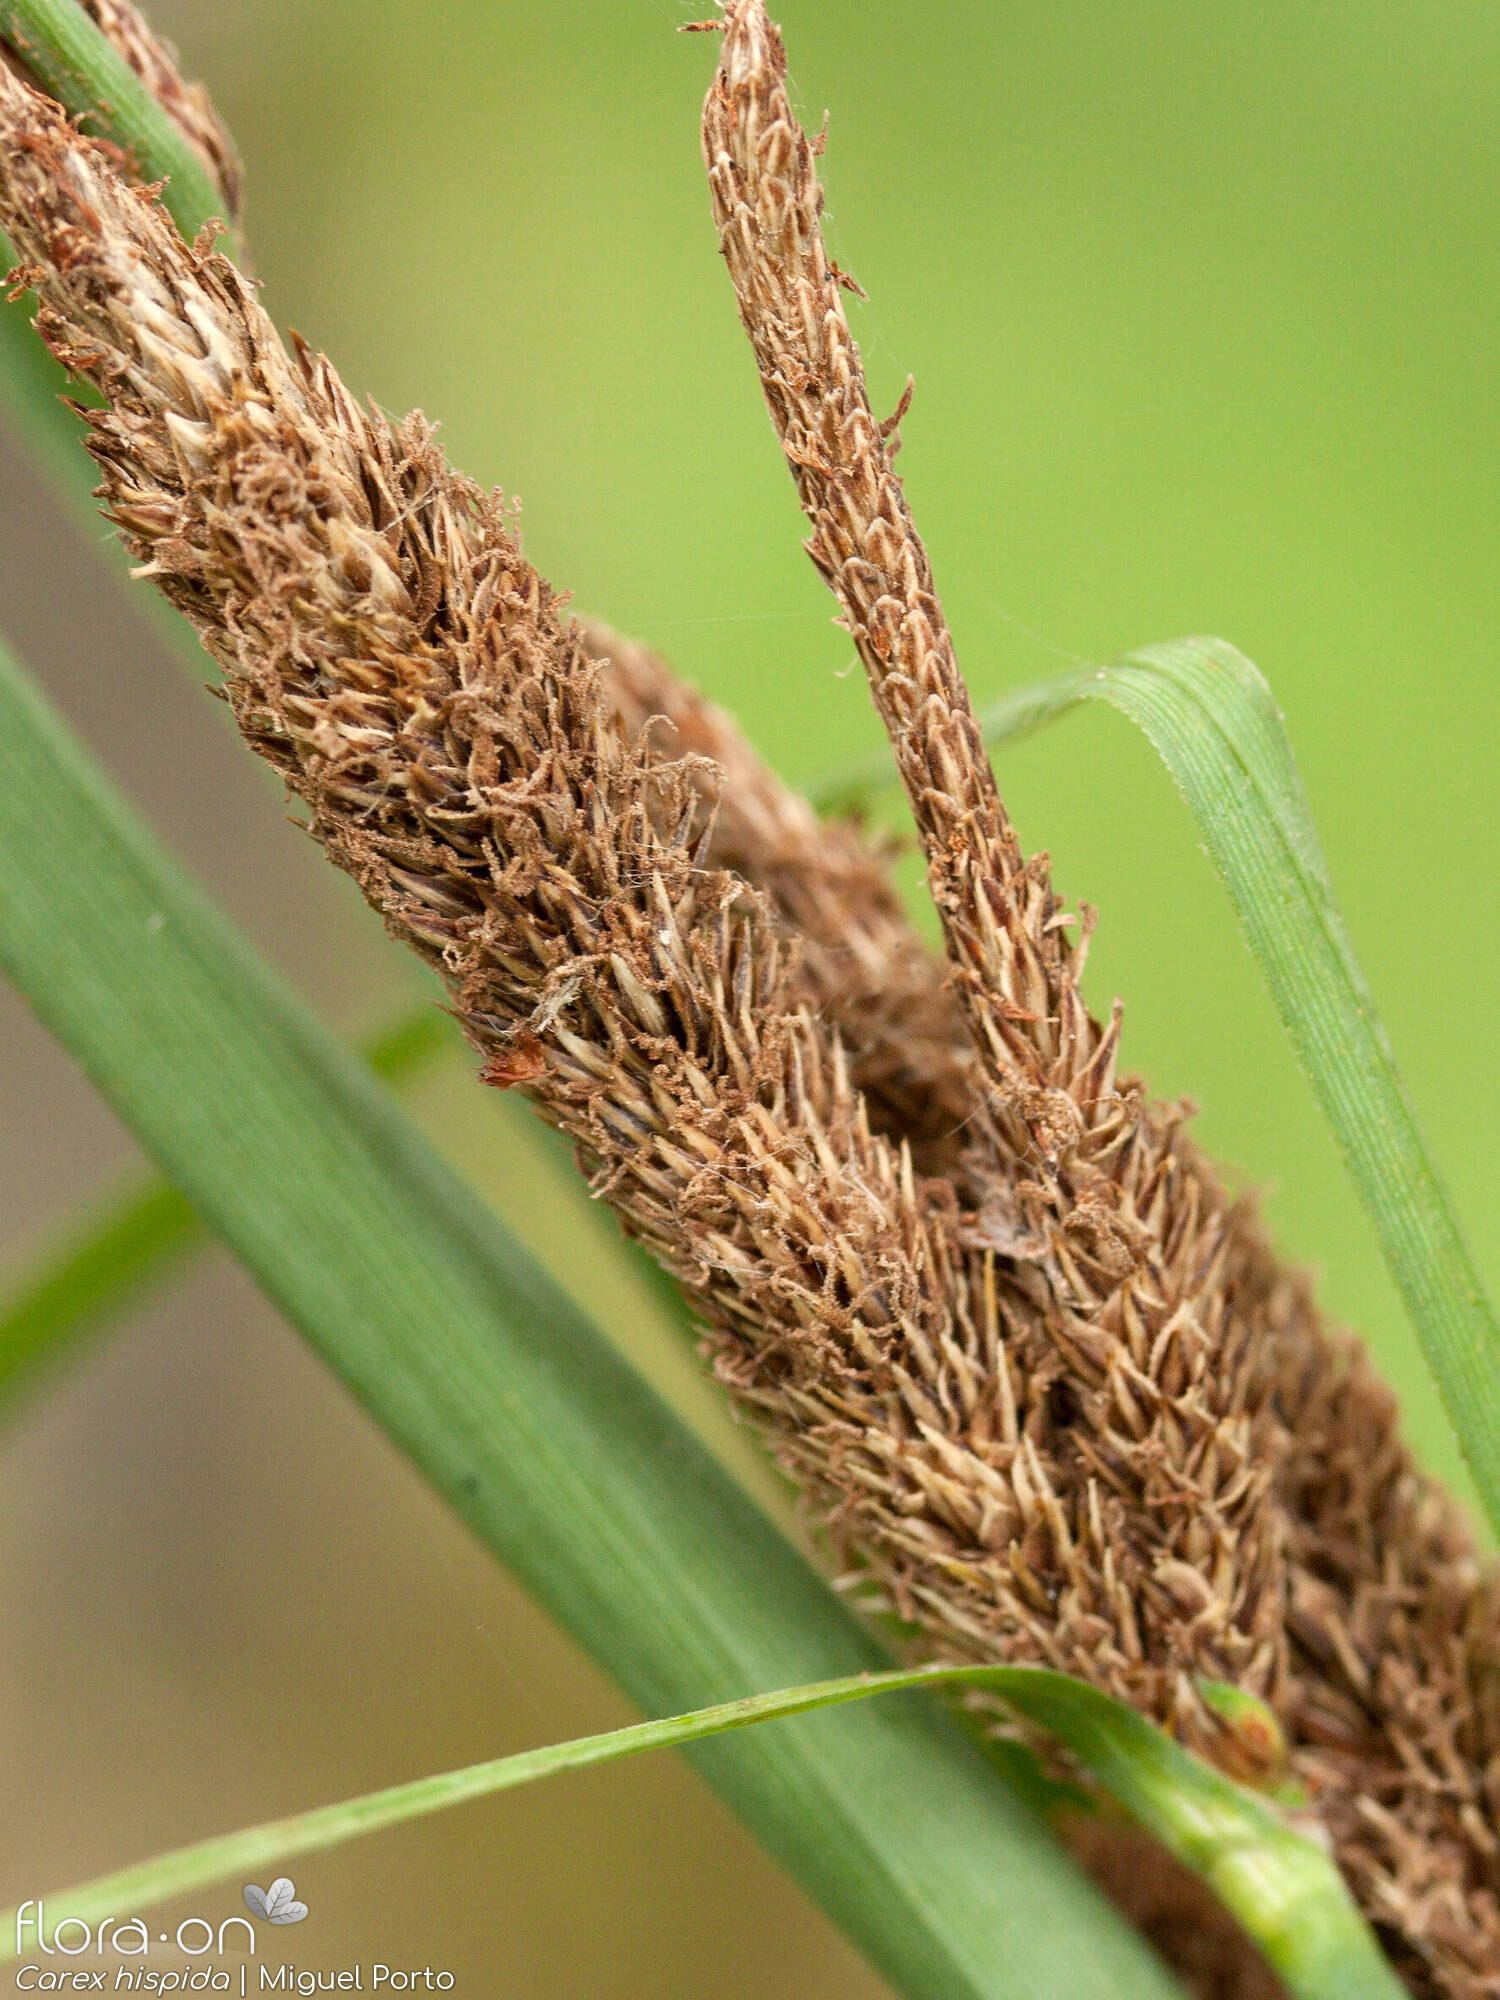 Carex hispida - Flor (close-up) | Miguel Porto; CC BY-NC 4.0